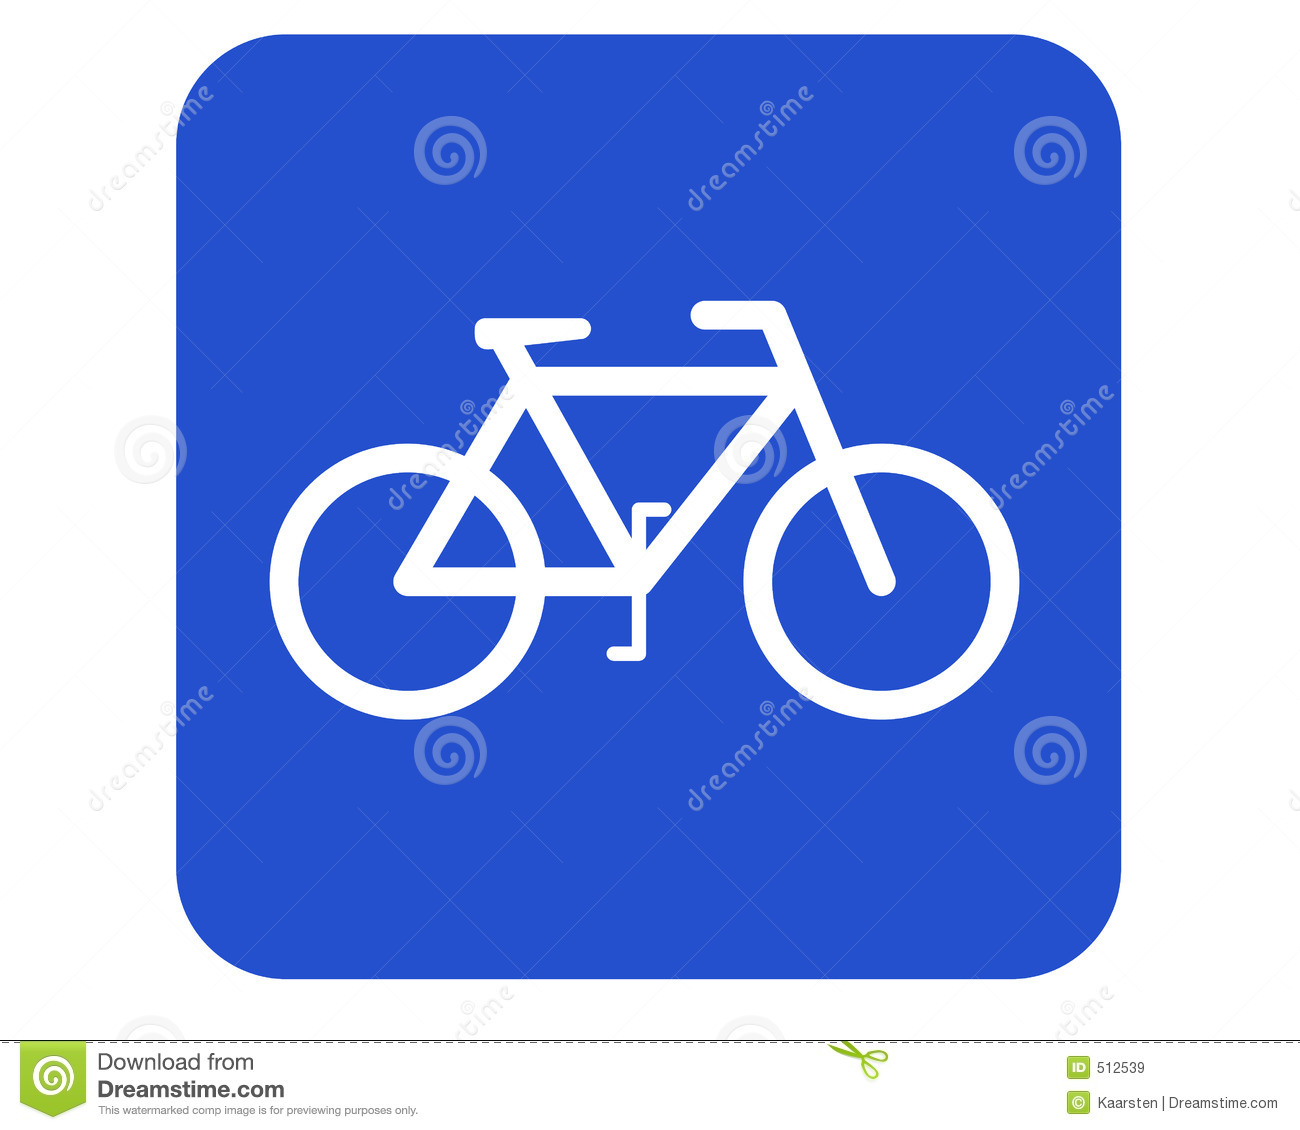 Bicycle Route Sign Black White Line Art Squiggly Svg Clipart   Free